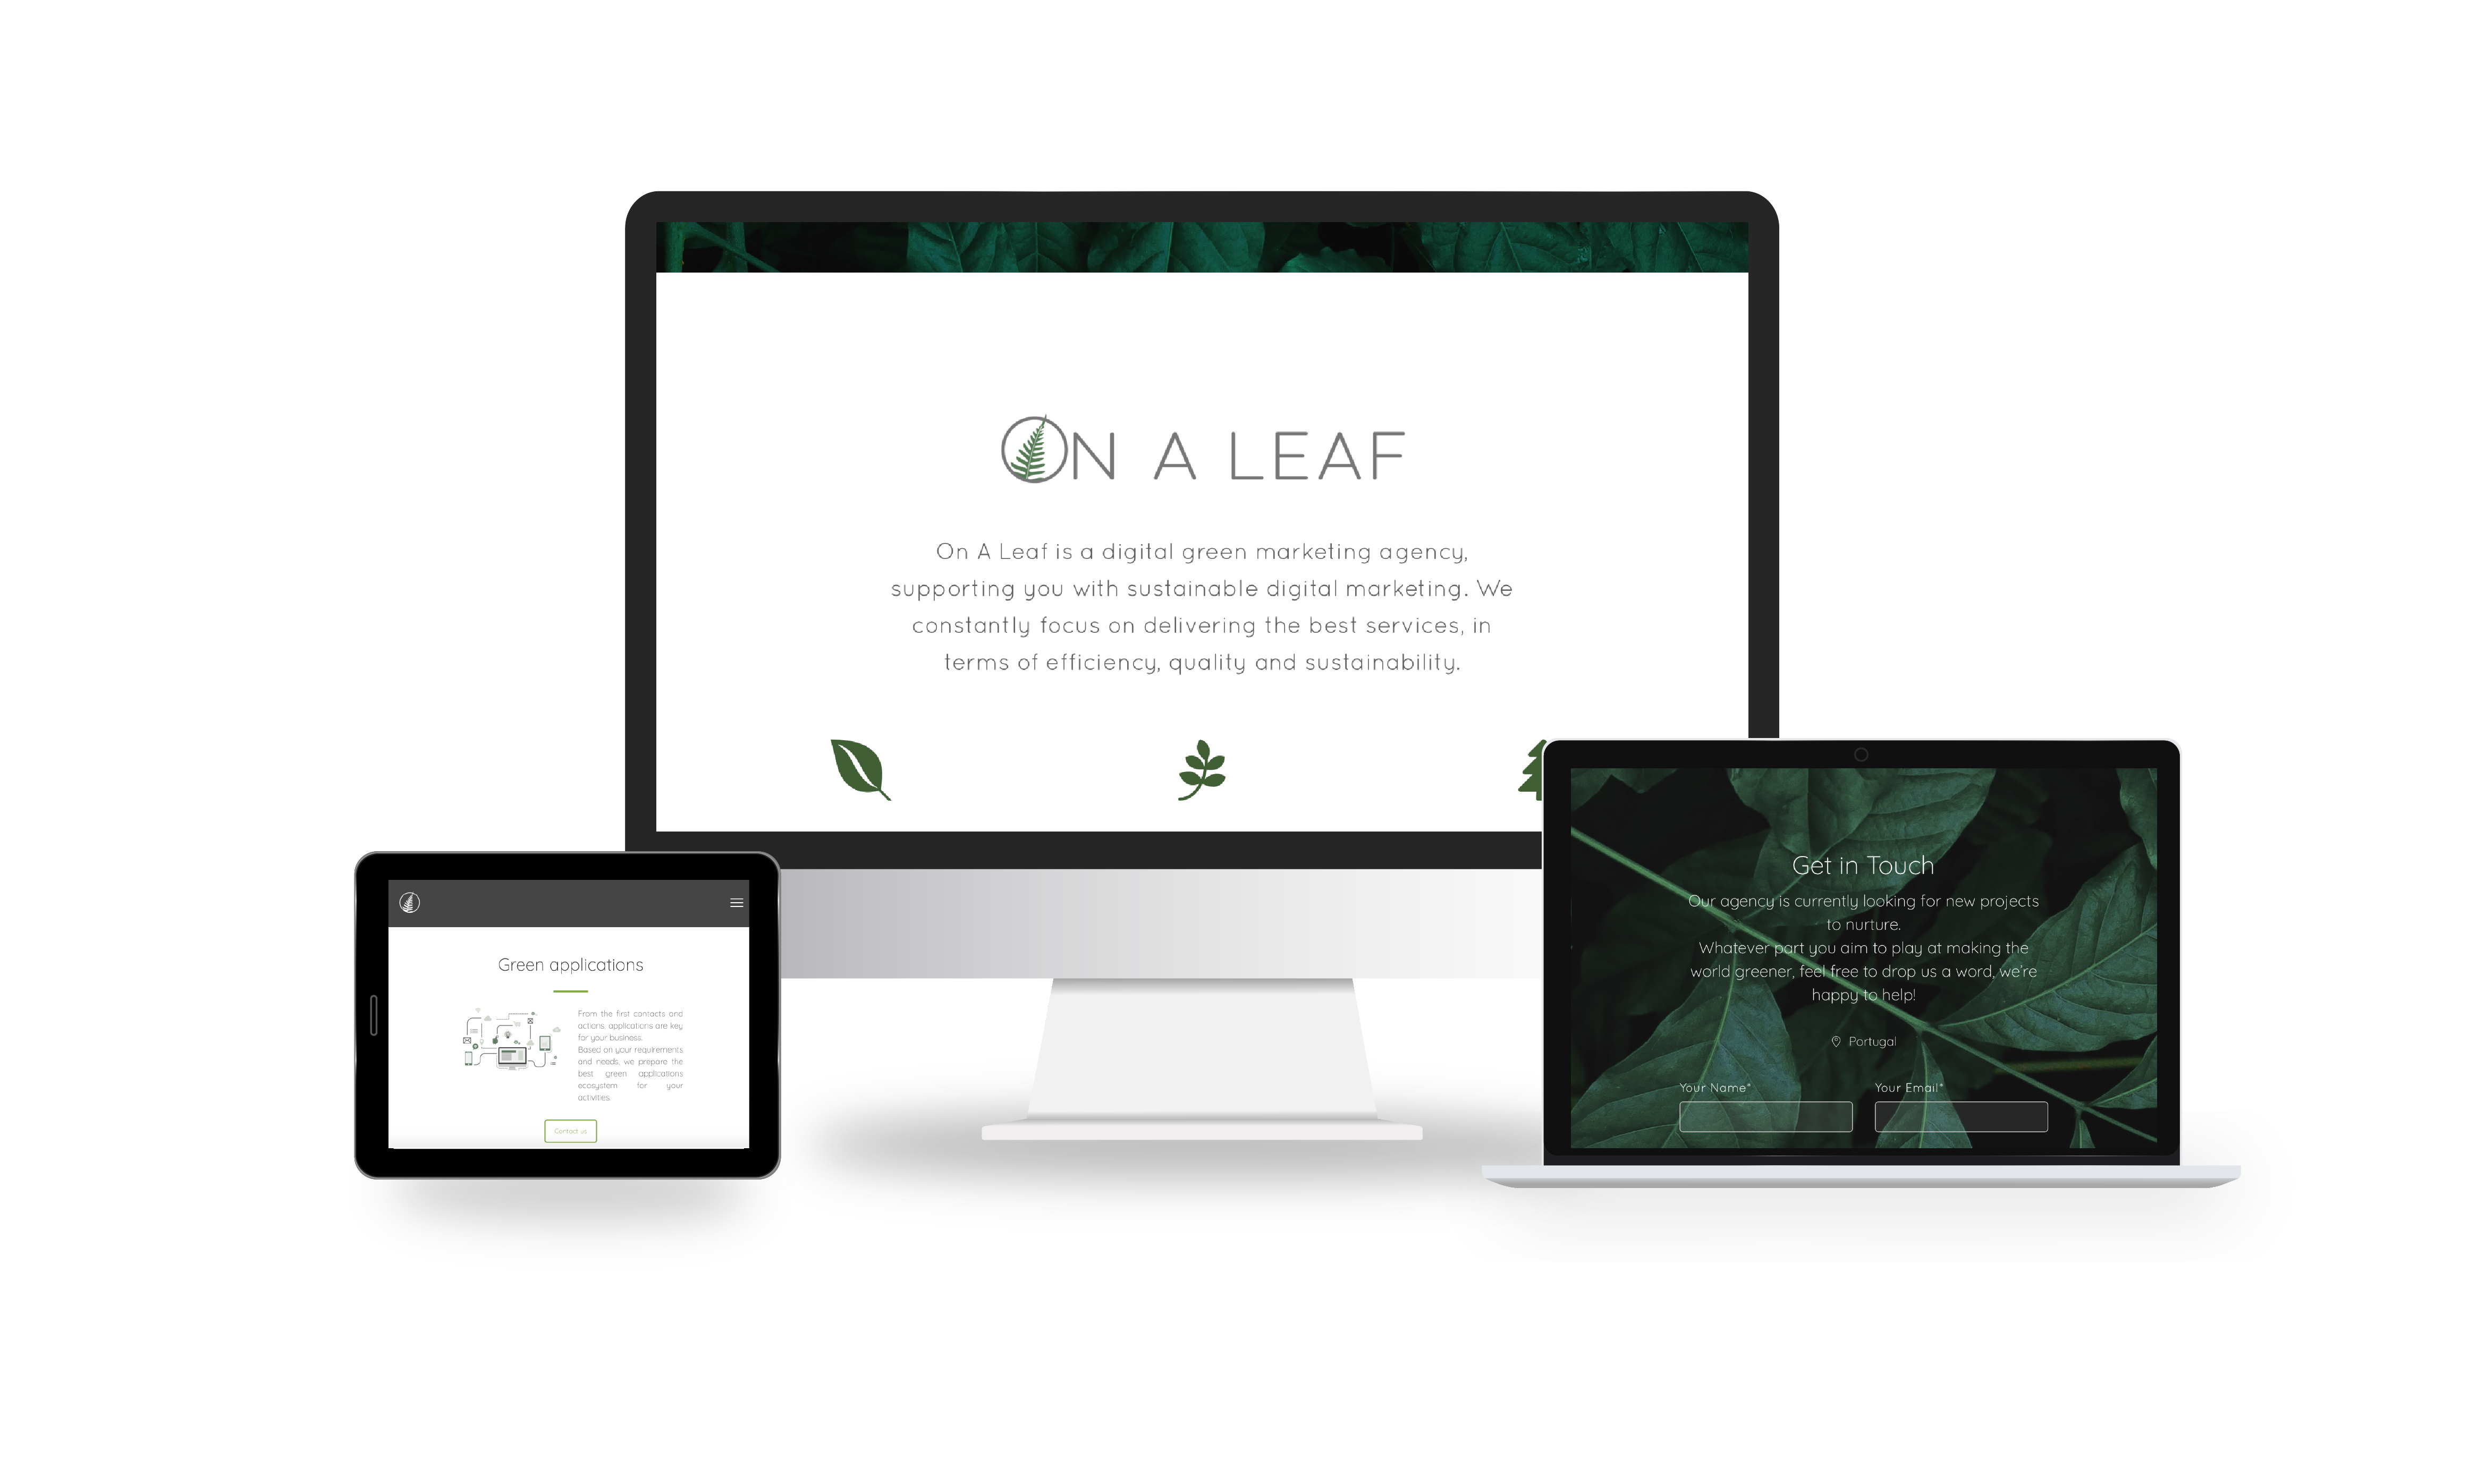 On A Leaf website screenshots - © Claire Gapais - Entrepreneur & digital green marketing consultant